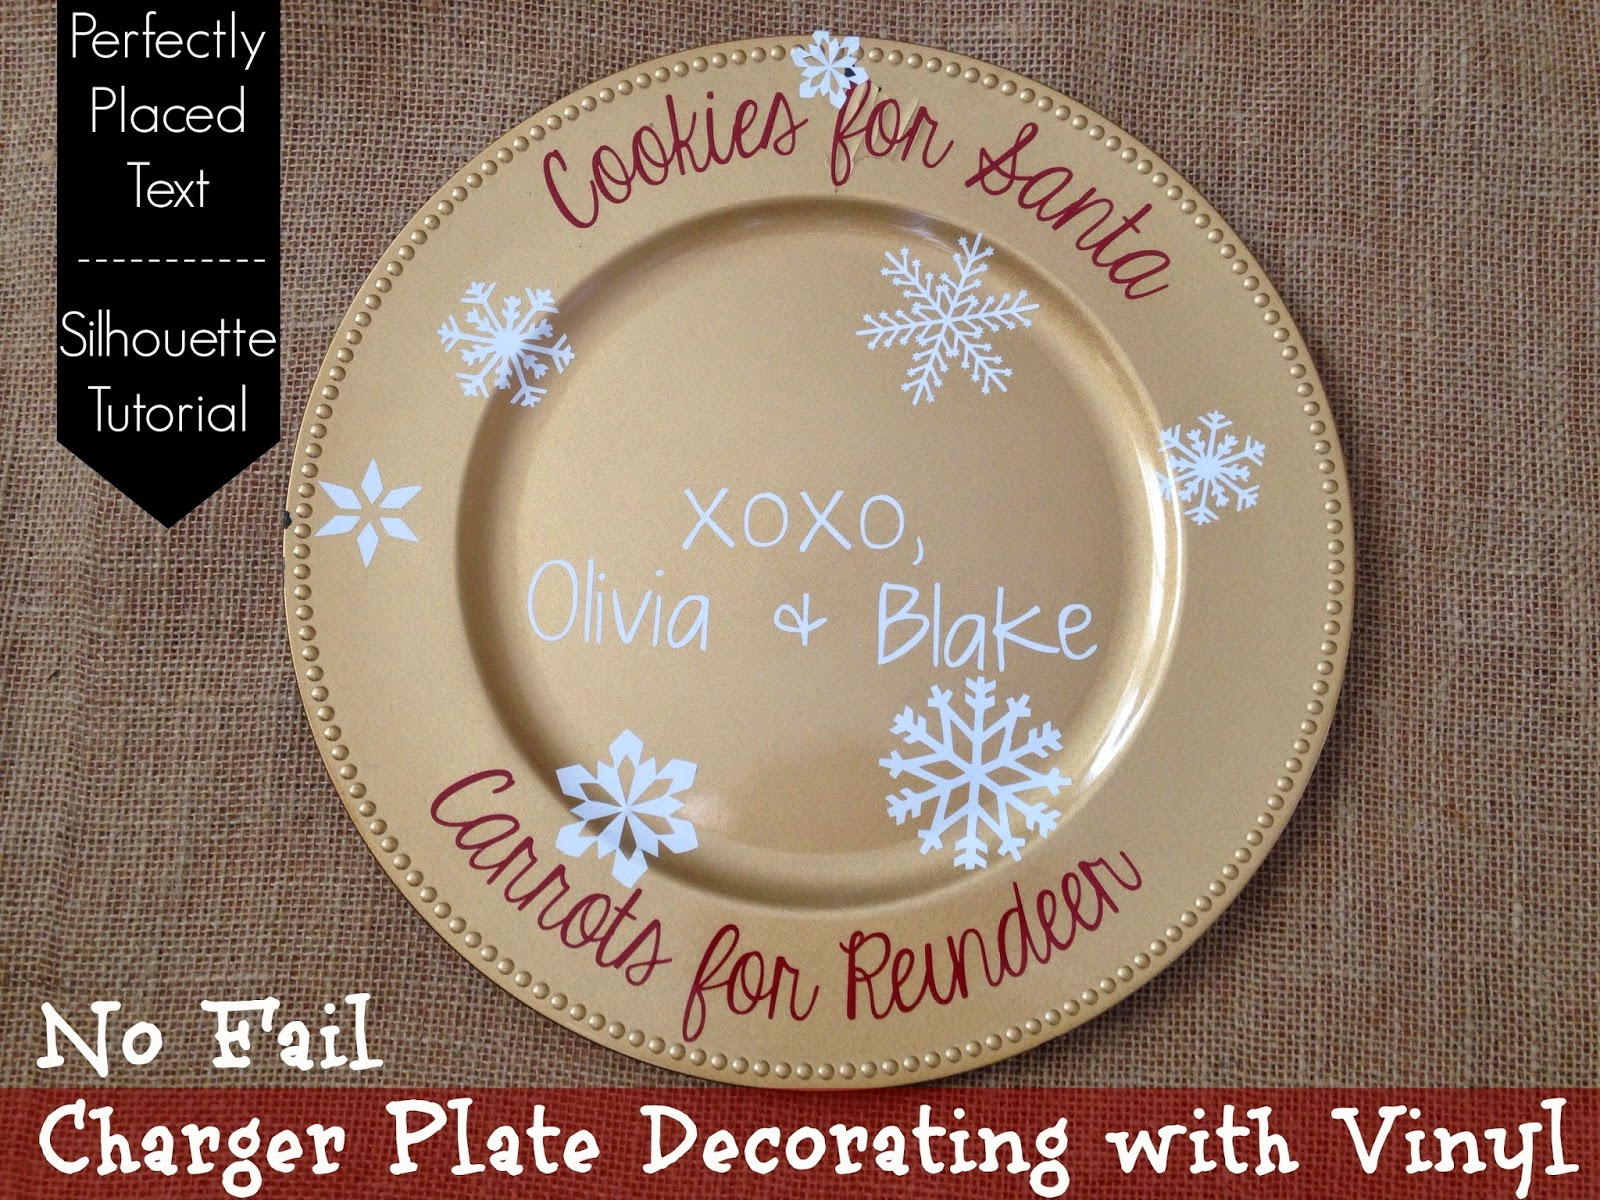 How To Perfectly Decorate Charger Plates With Silhouette : decorative plate chargers - pezcame.com